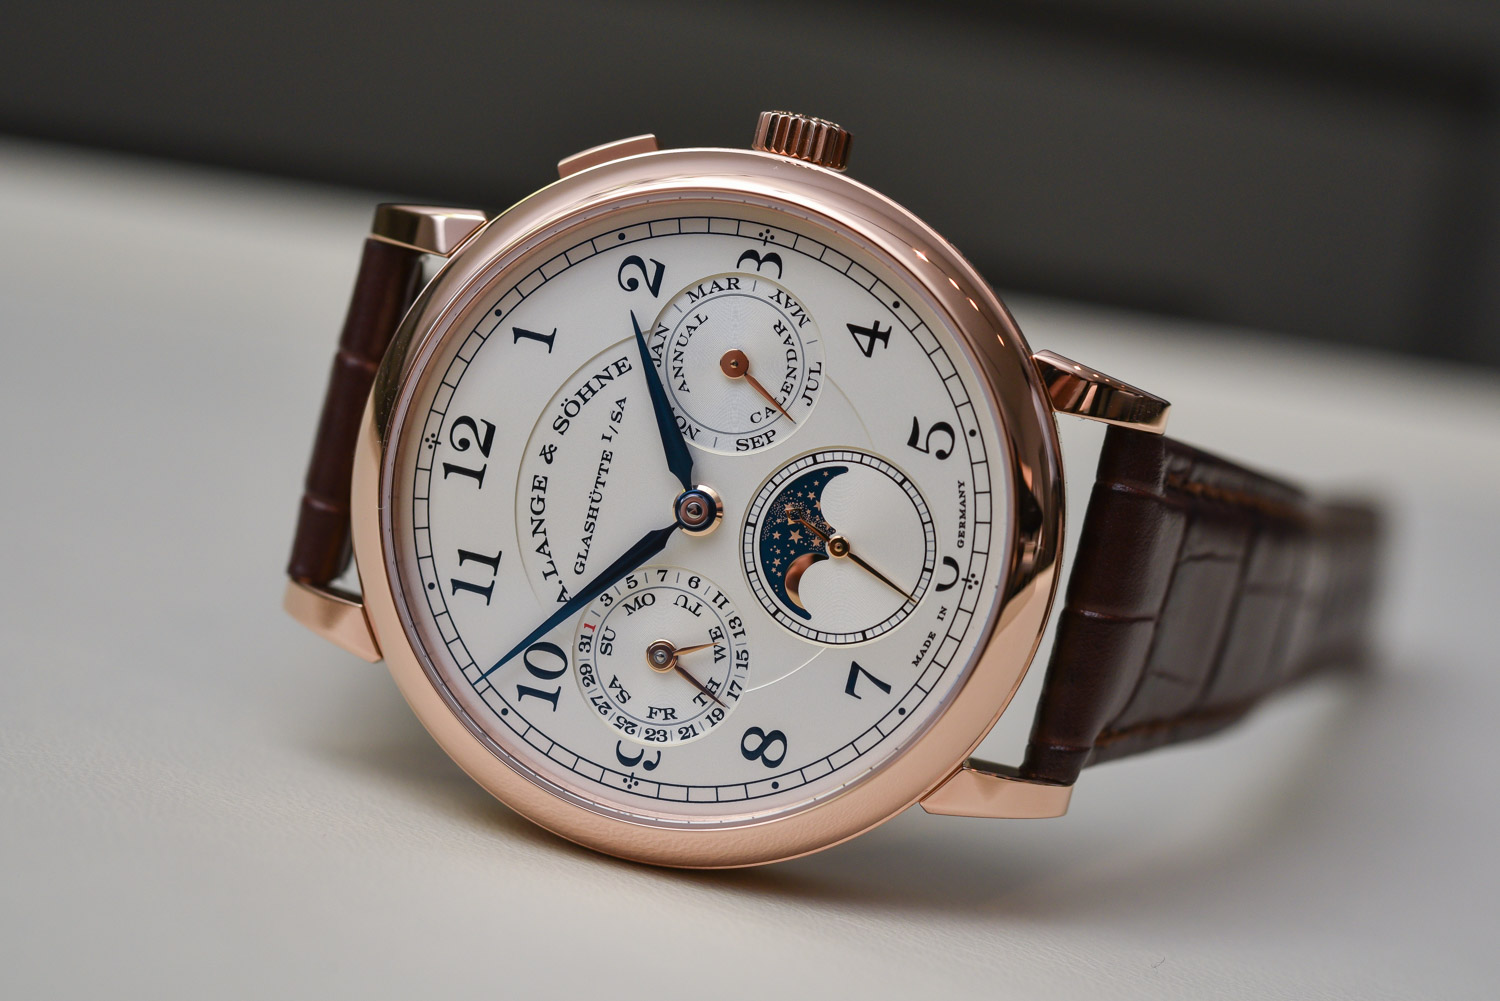 High End Watches >> 5 High End Watches Made In Germany Germans Do It Better